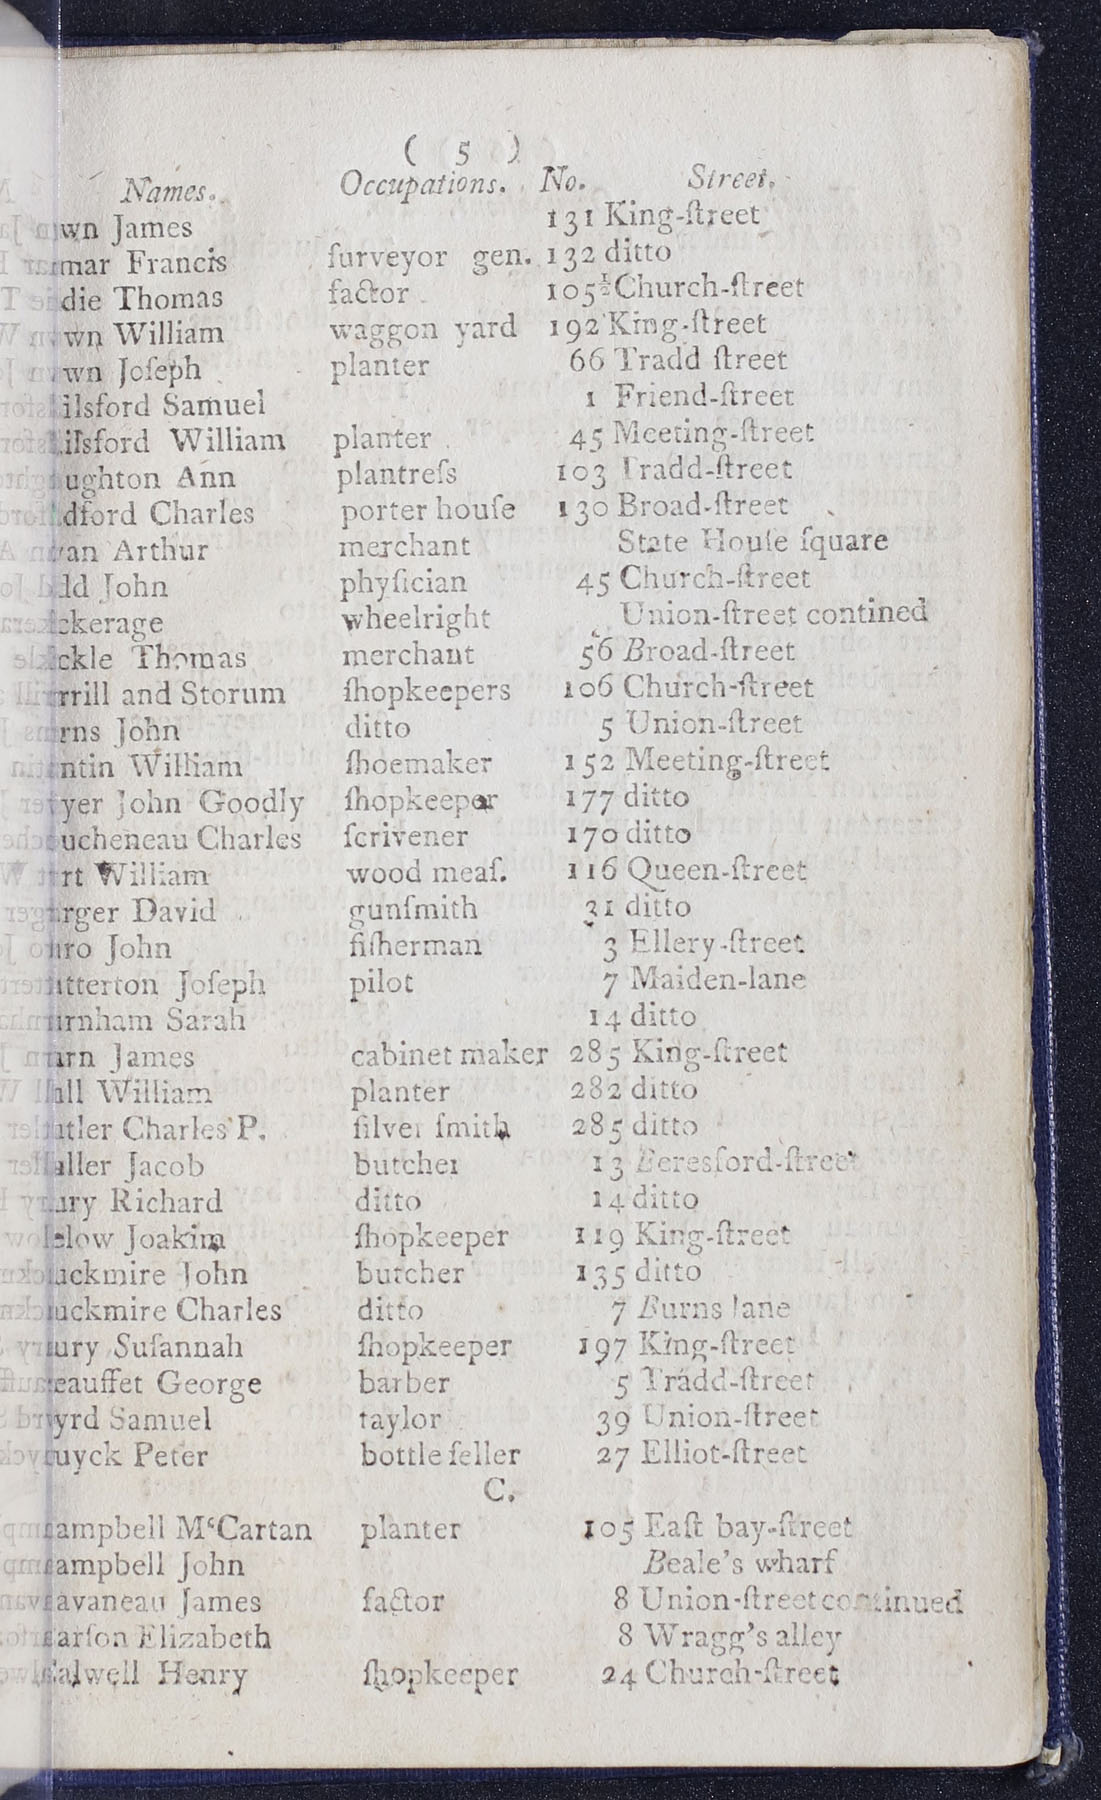 Charleston Directory 1790, page 5